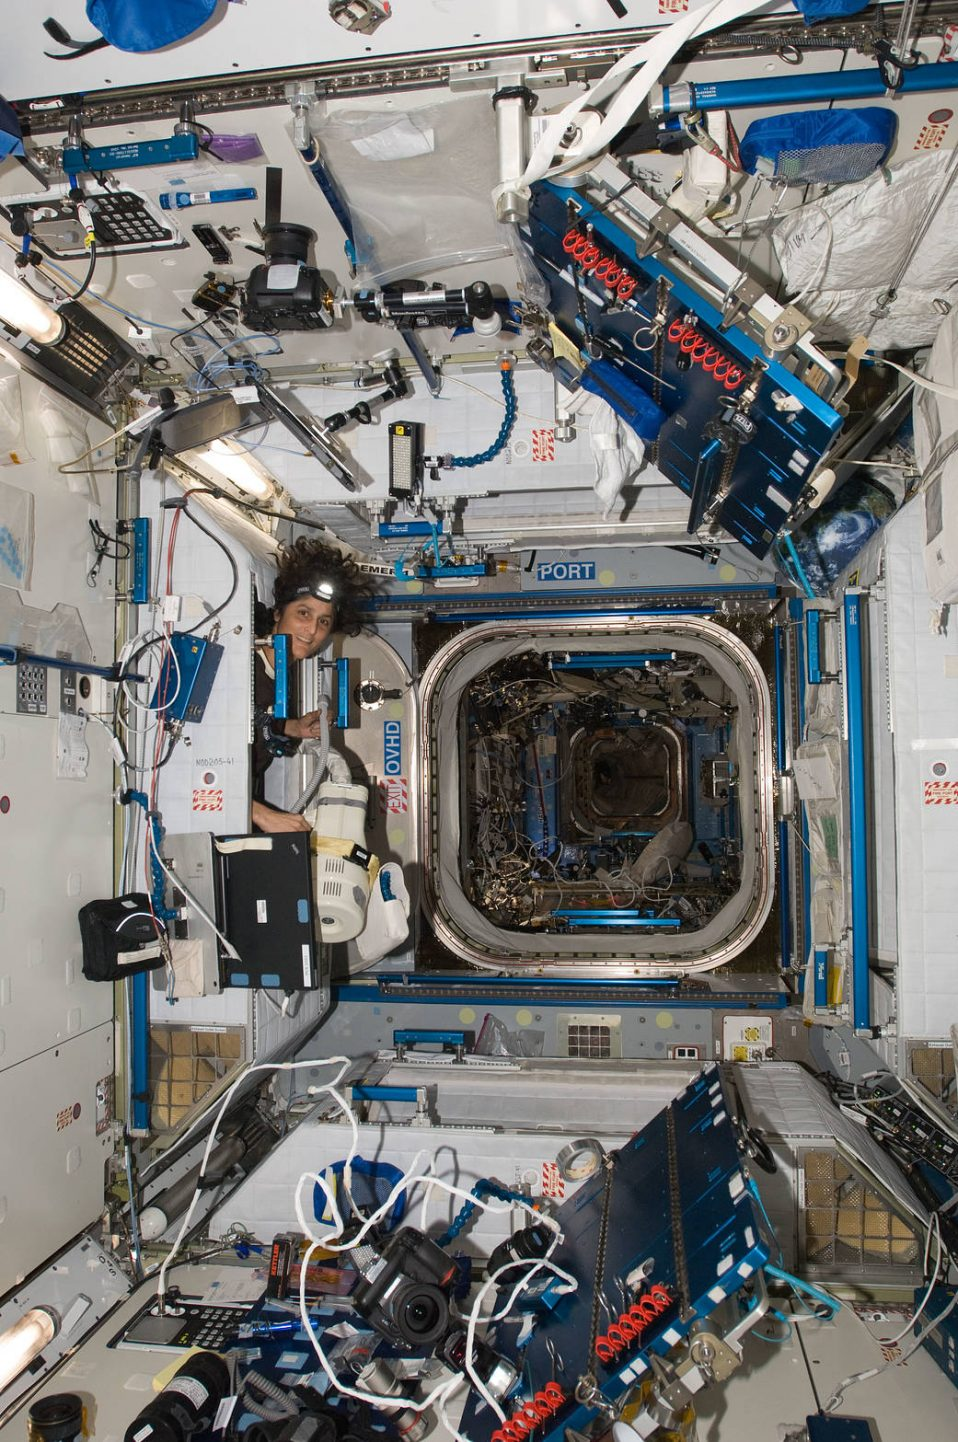 NASA astronaut Sunita Williams vacuums onboard the ISS during Expedition 33